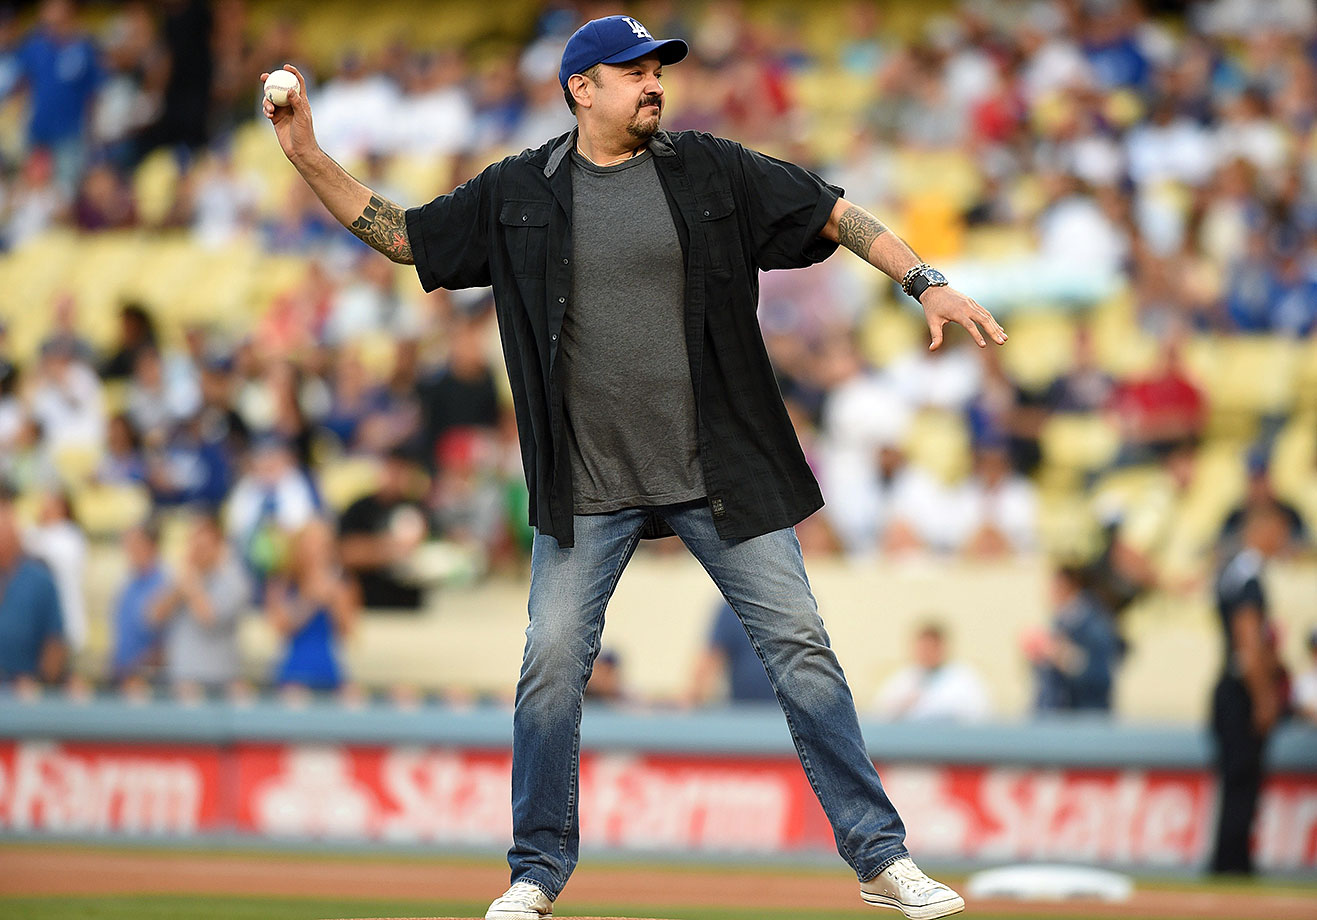 August 10 at Dodger Stadium in Los Angeles